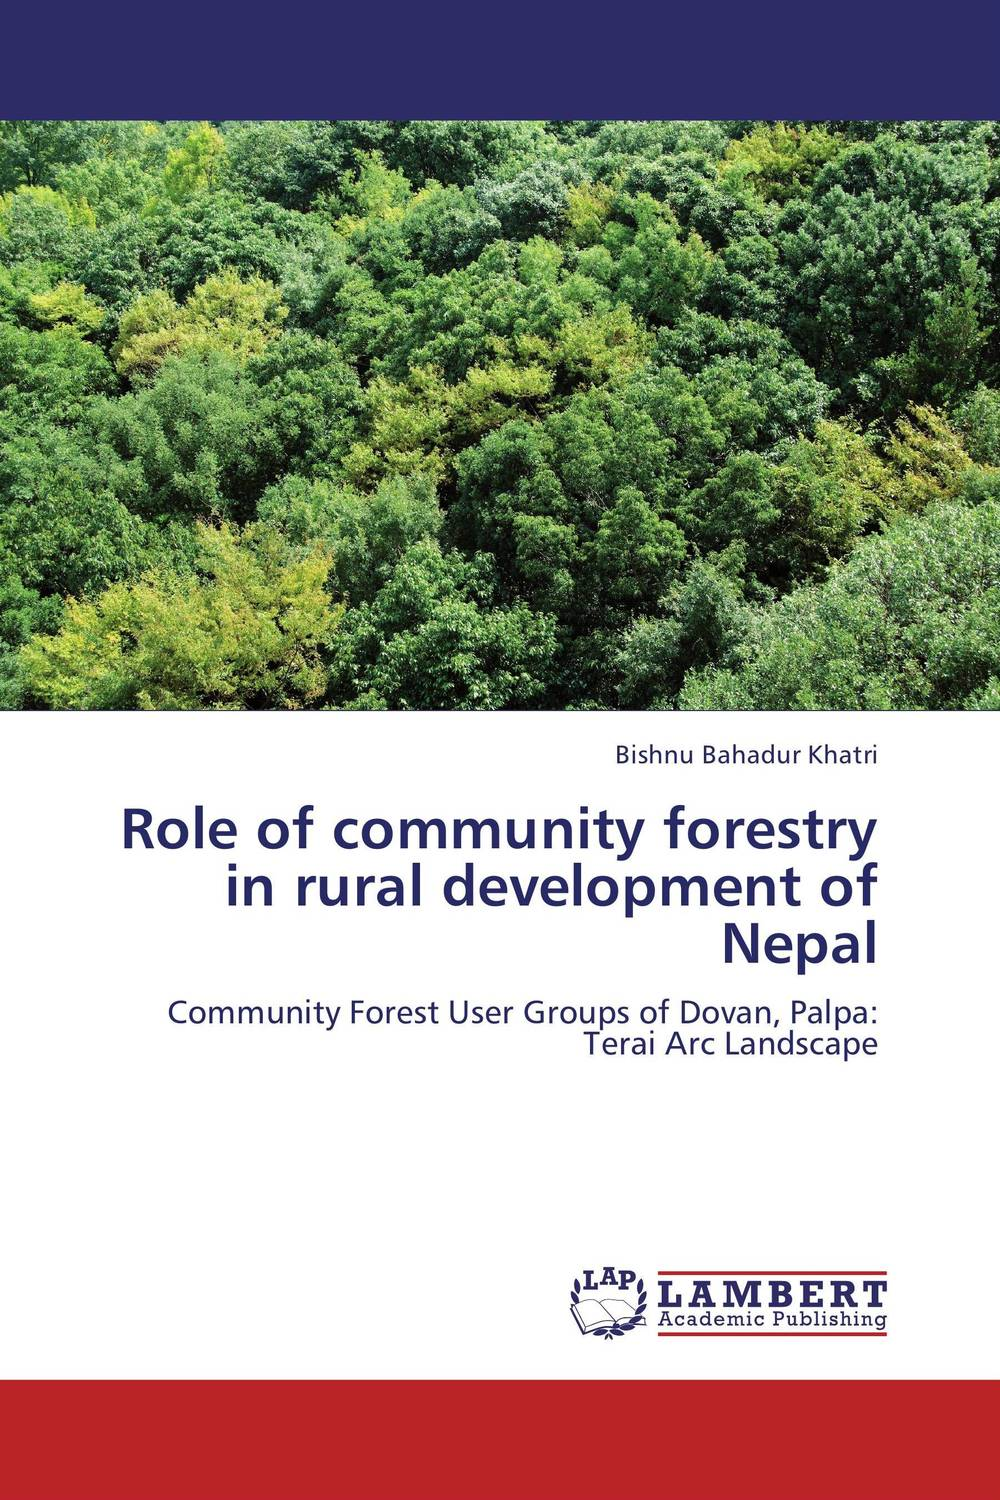 Role of community forestry in rural development of Nepal жидкая помада by terry terrybly velvet rouge 5 цвет 5 baba boom variant hex name cc6f7e